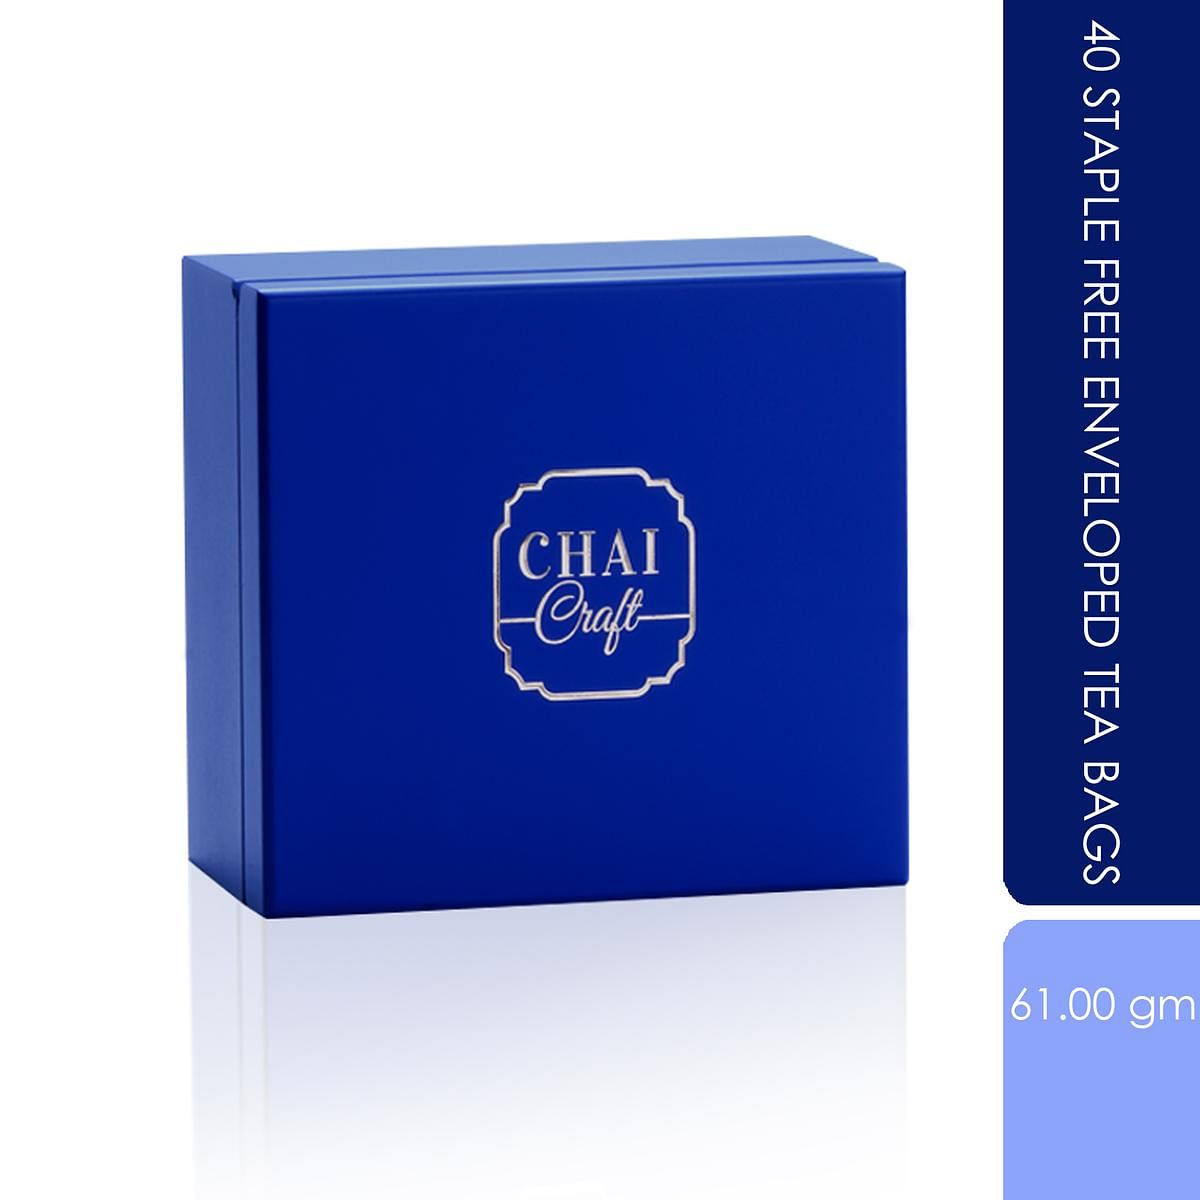 Chai Craft - 40 Staple Free Enveloped Tea Bags in a Wooden Box